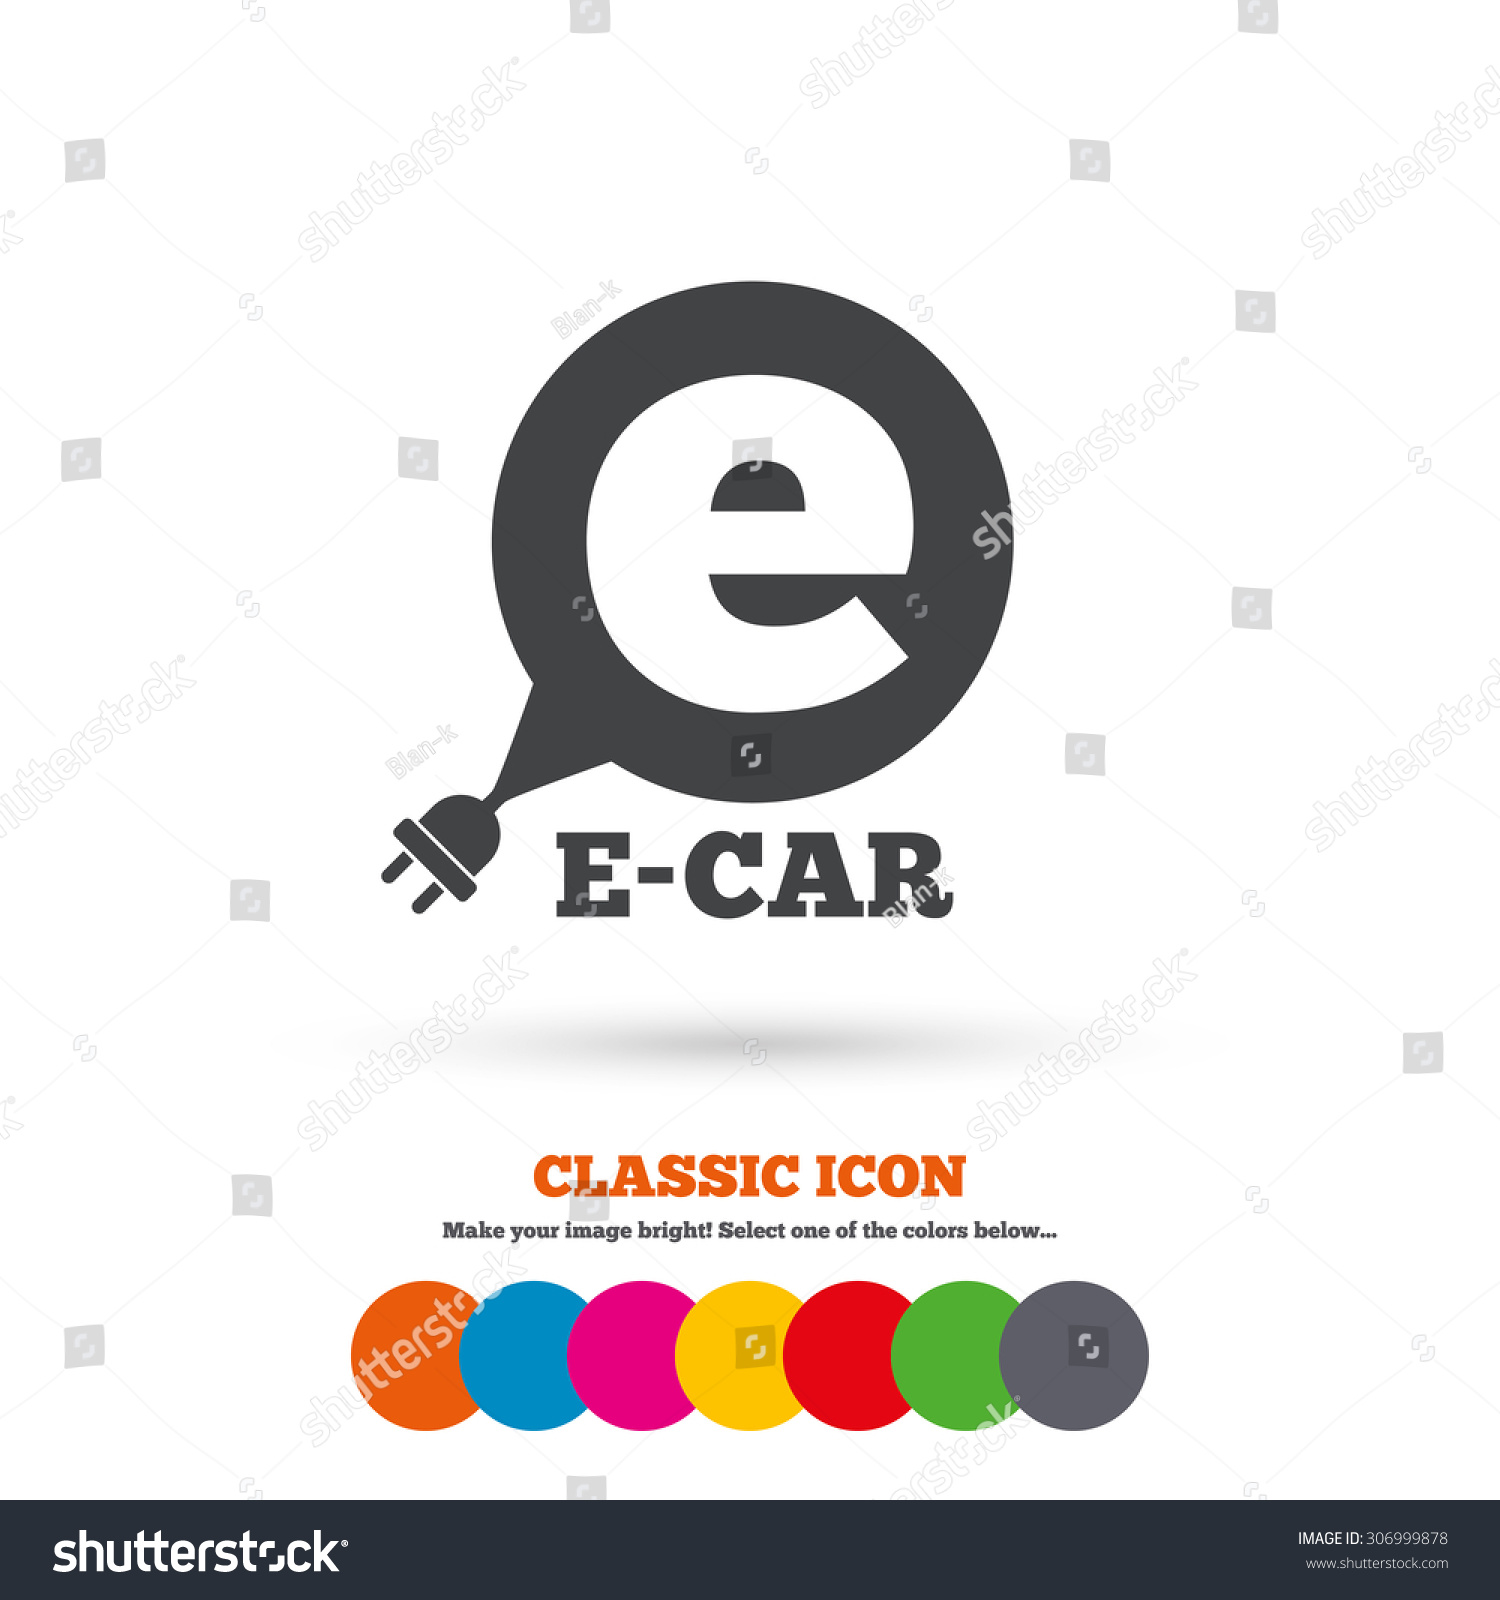 hight resolution of electric car sign icon electric vehicle transport symbol speech bubble classic flat icon